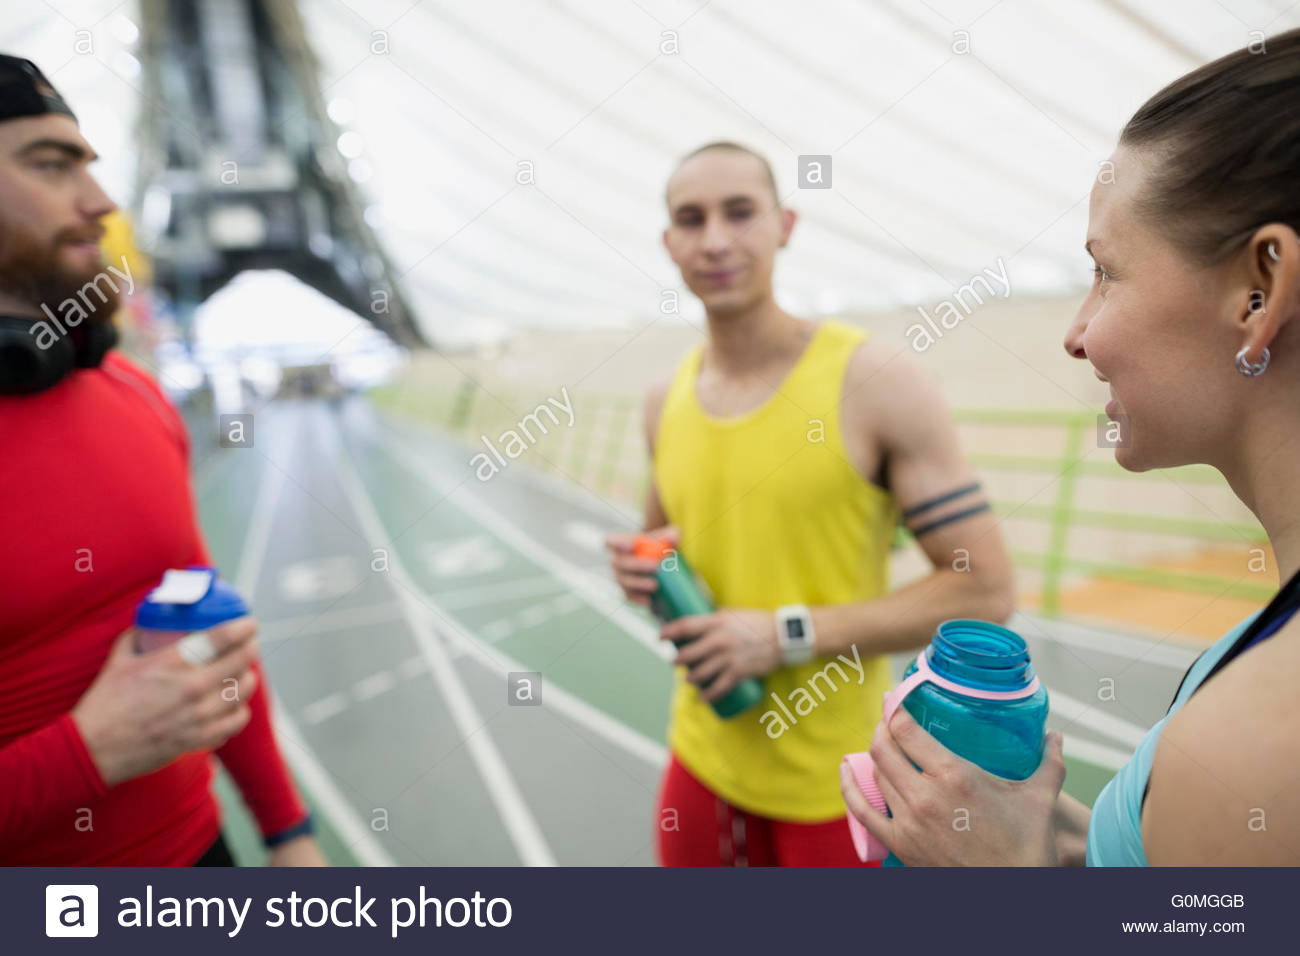 Runners resting talking drinking water on indoor track - Stock Image